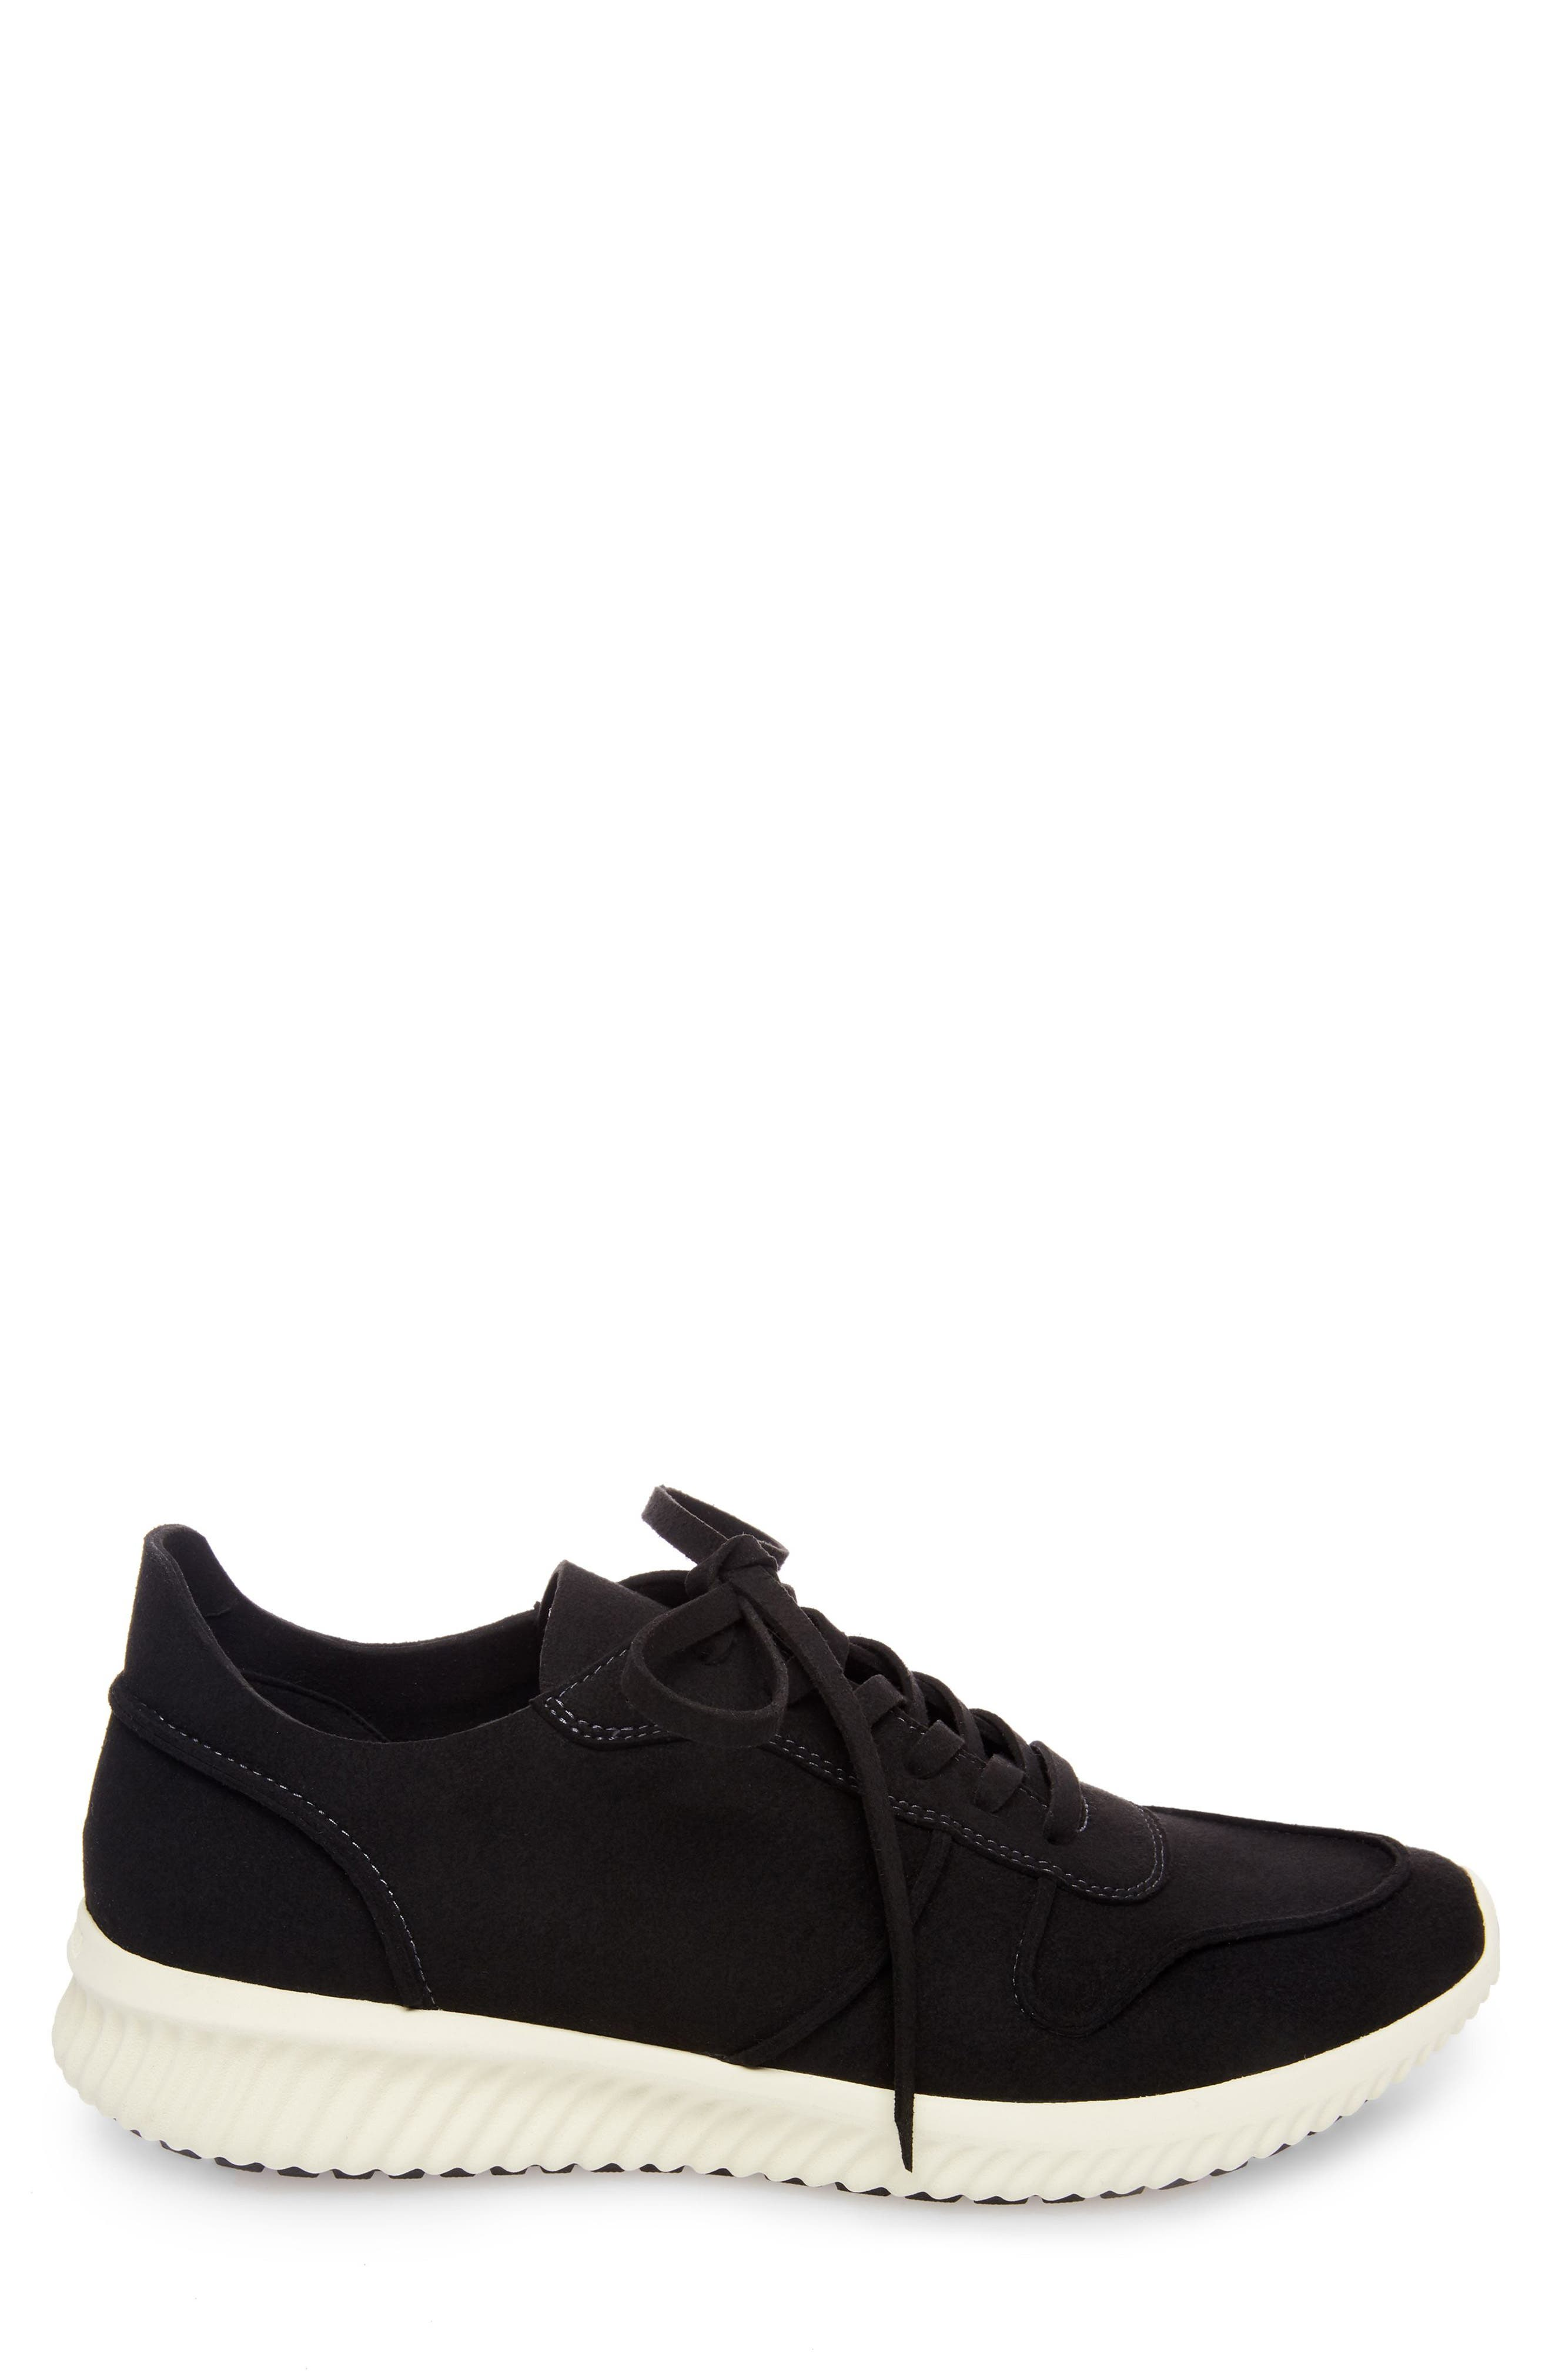 Rolf Low Top Sneaker,                             Alternate thumbnail 3, color,                             BLACK LEATHER